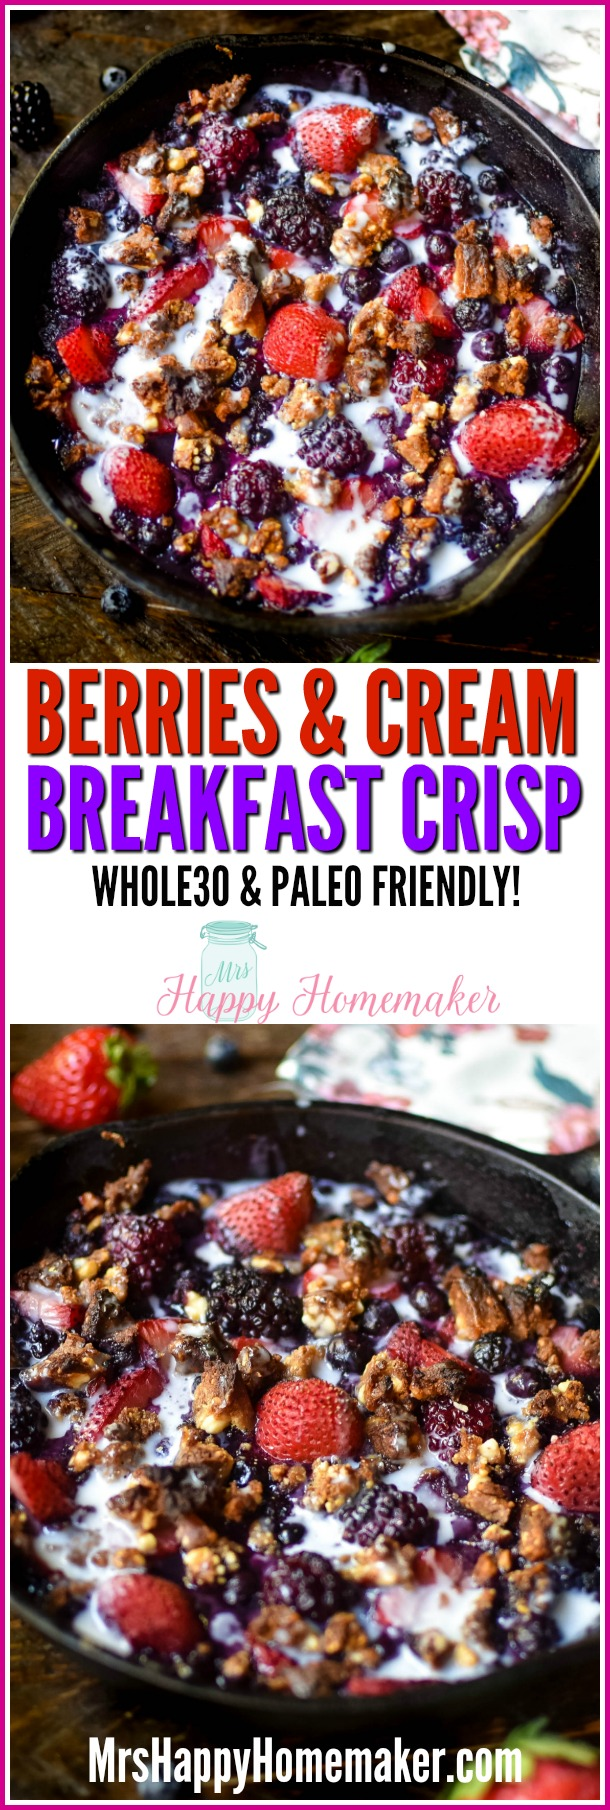 Whole30 Berries & Cream Breakfast Crisp